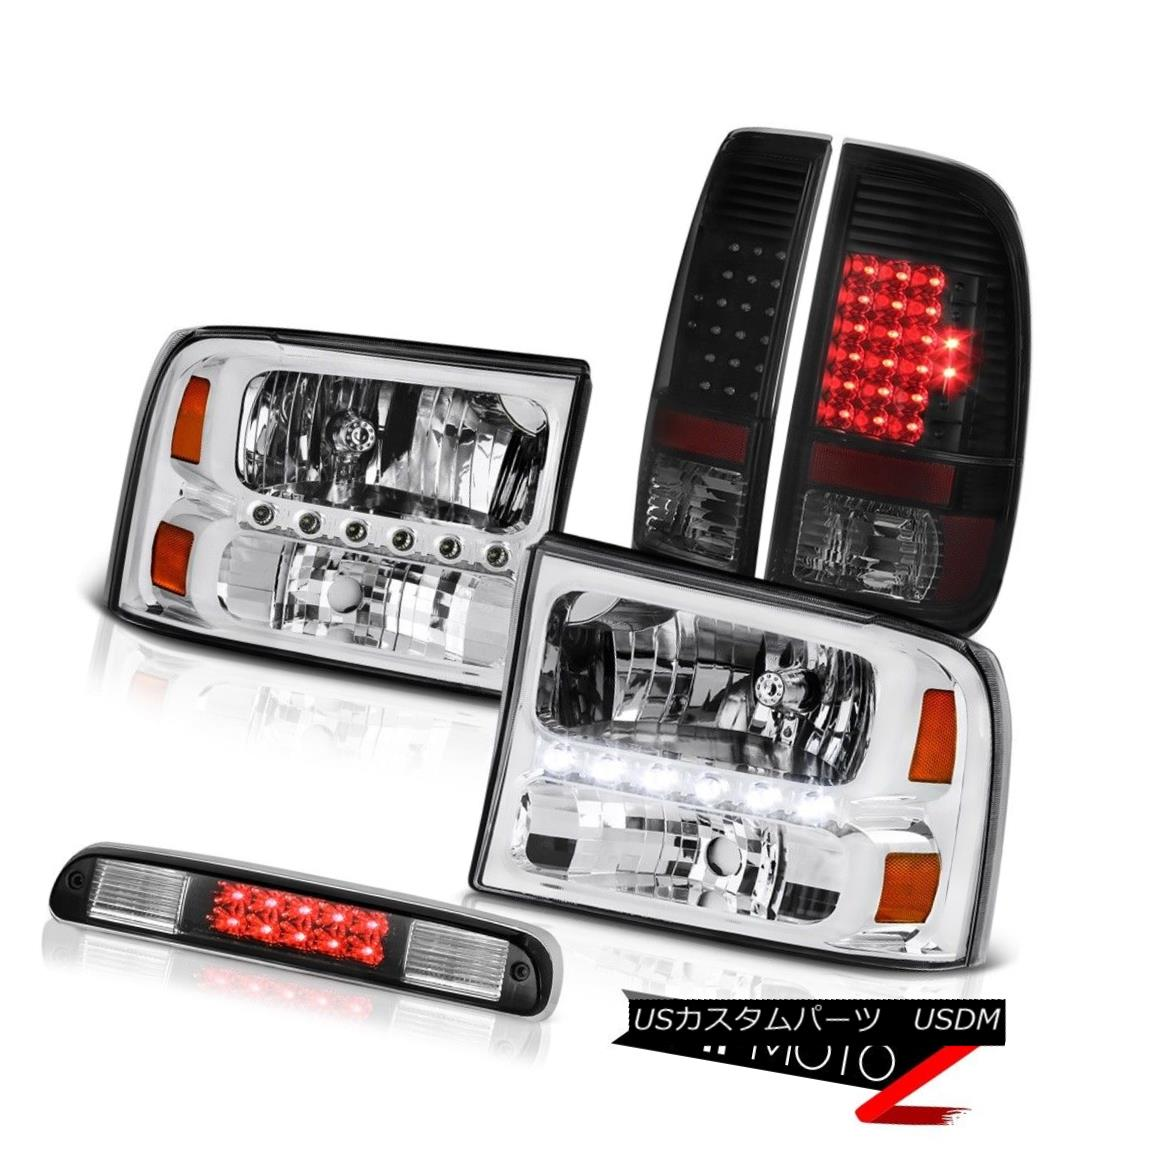 ヘッドライト Clear Headlights Philip SuperFlux LED Taillights Black 99-04 F350 Turbo Diesel クリアヘッドライトPhilip SuperFlux LEDテールライトブラック99-04 F350ターボディーゼル